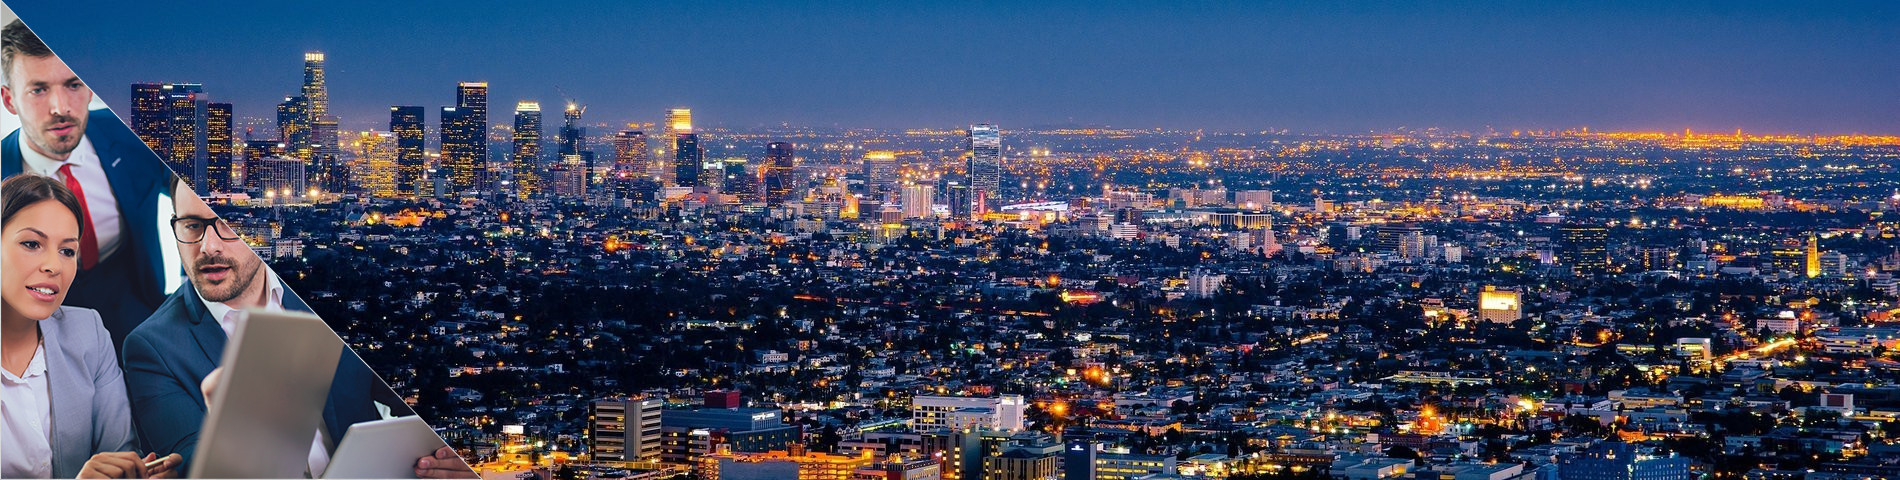 Los Angeles - Standard & Business Kombination Gruppe